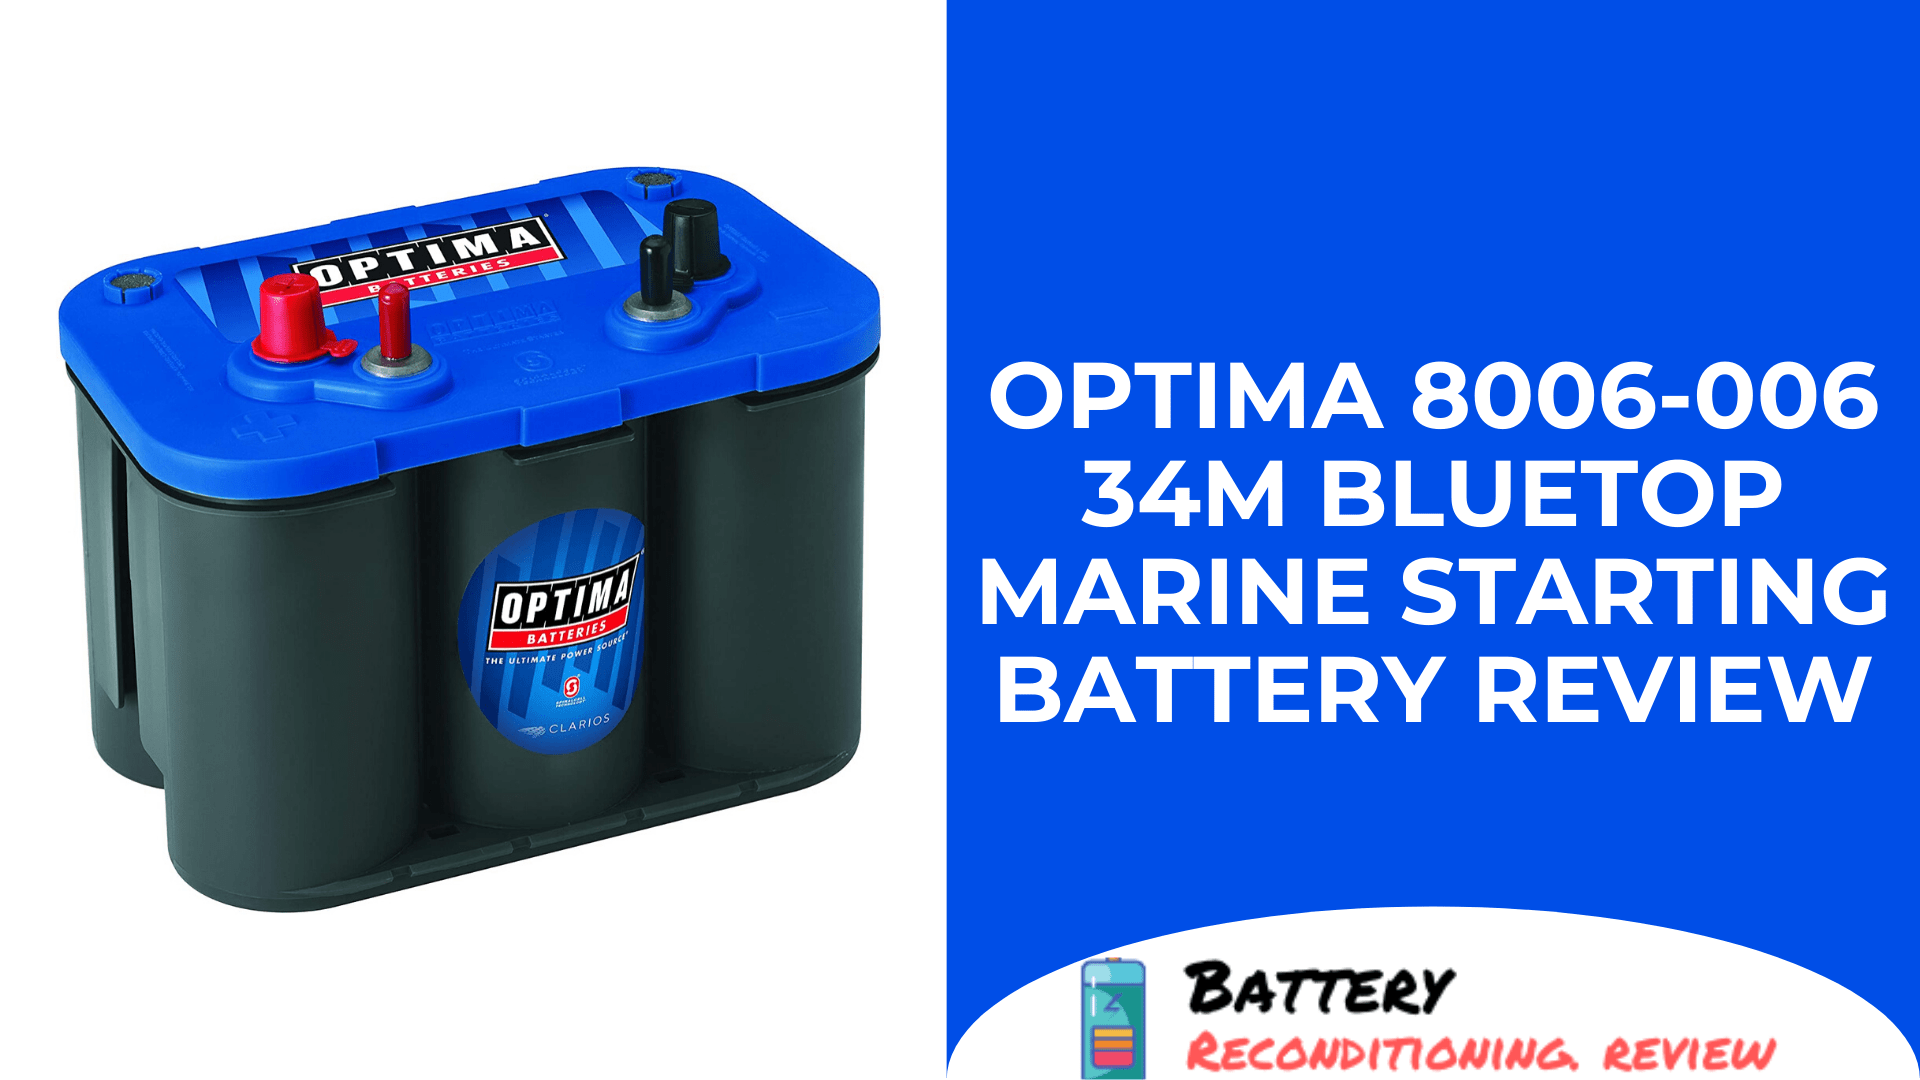 Optima 8006-006 34M BlueTop Marine Starting Battery Review